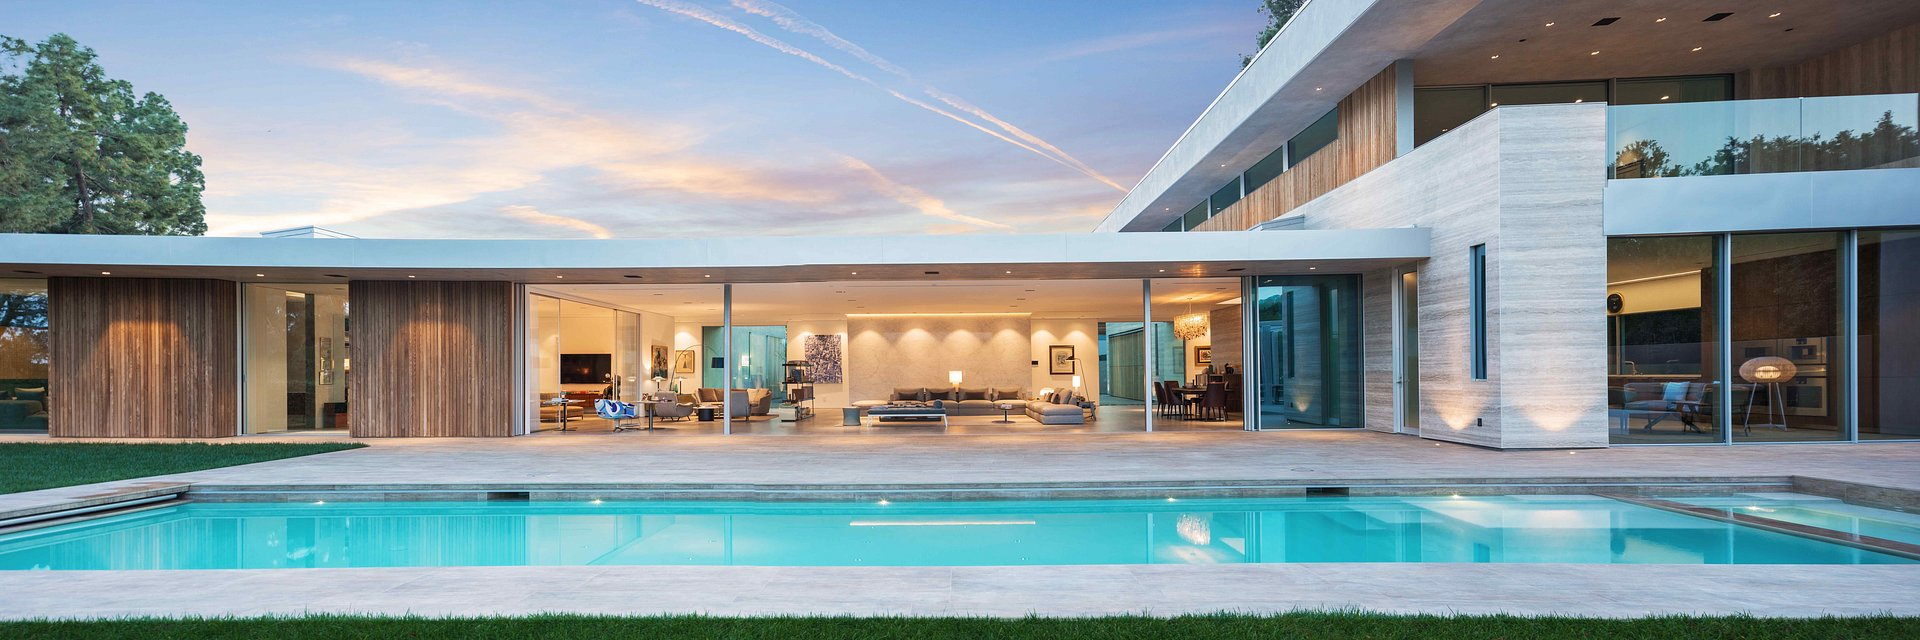 Coldwell Banker Residential Brokerage Lists Bel Air Property for $26.995 Million